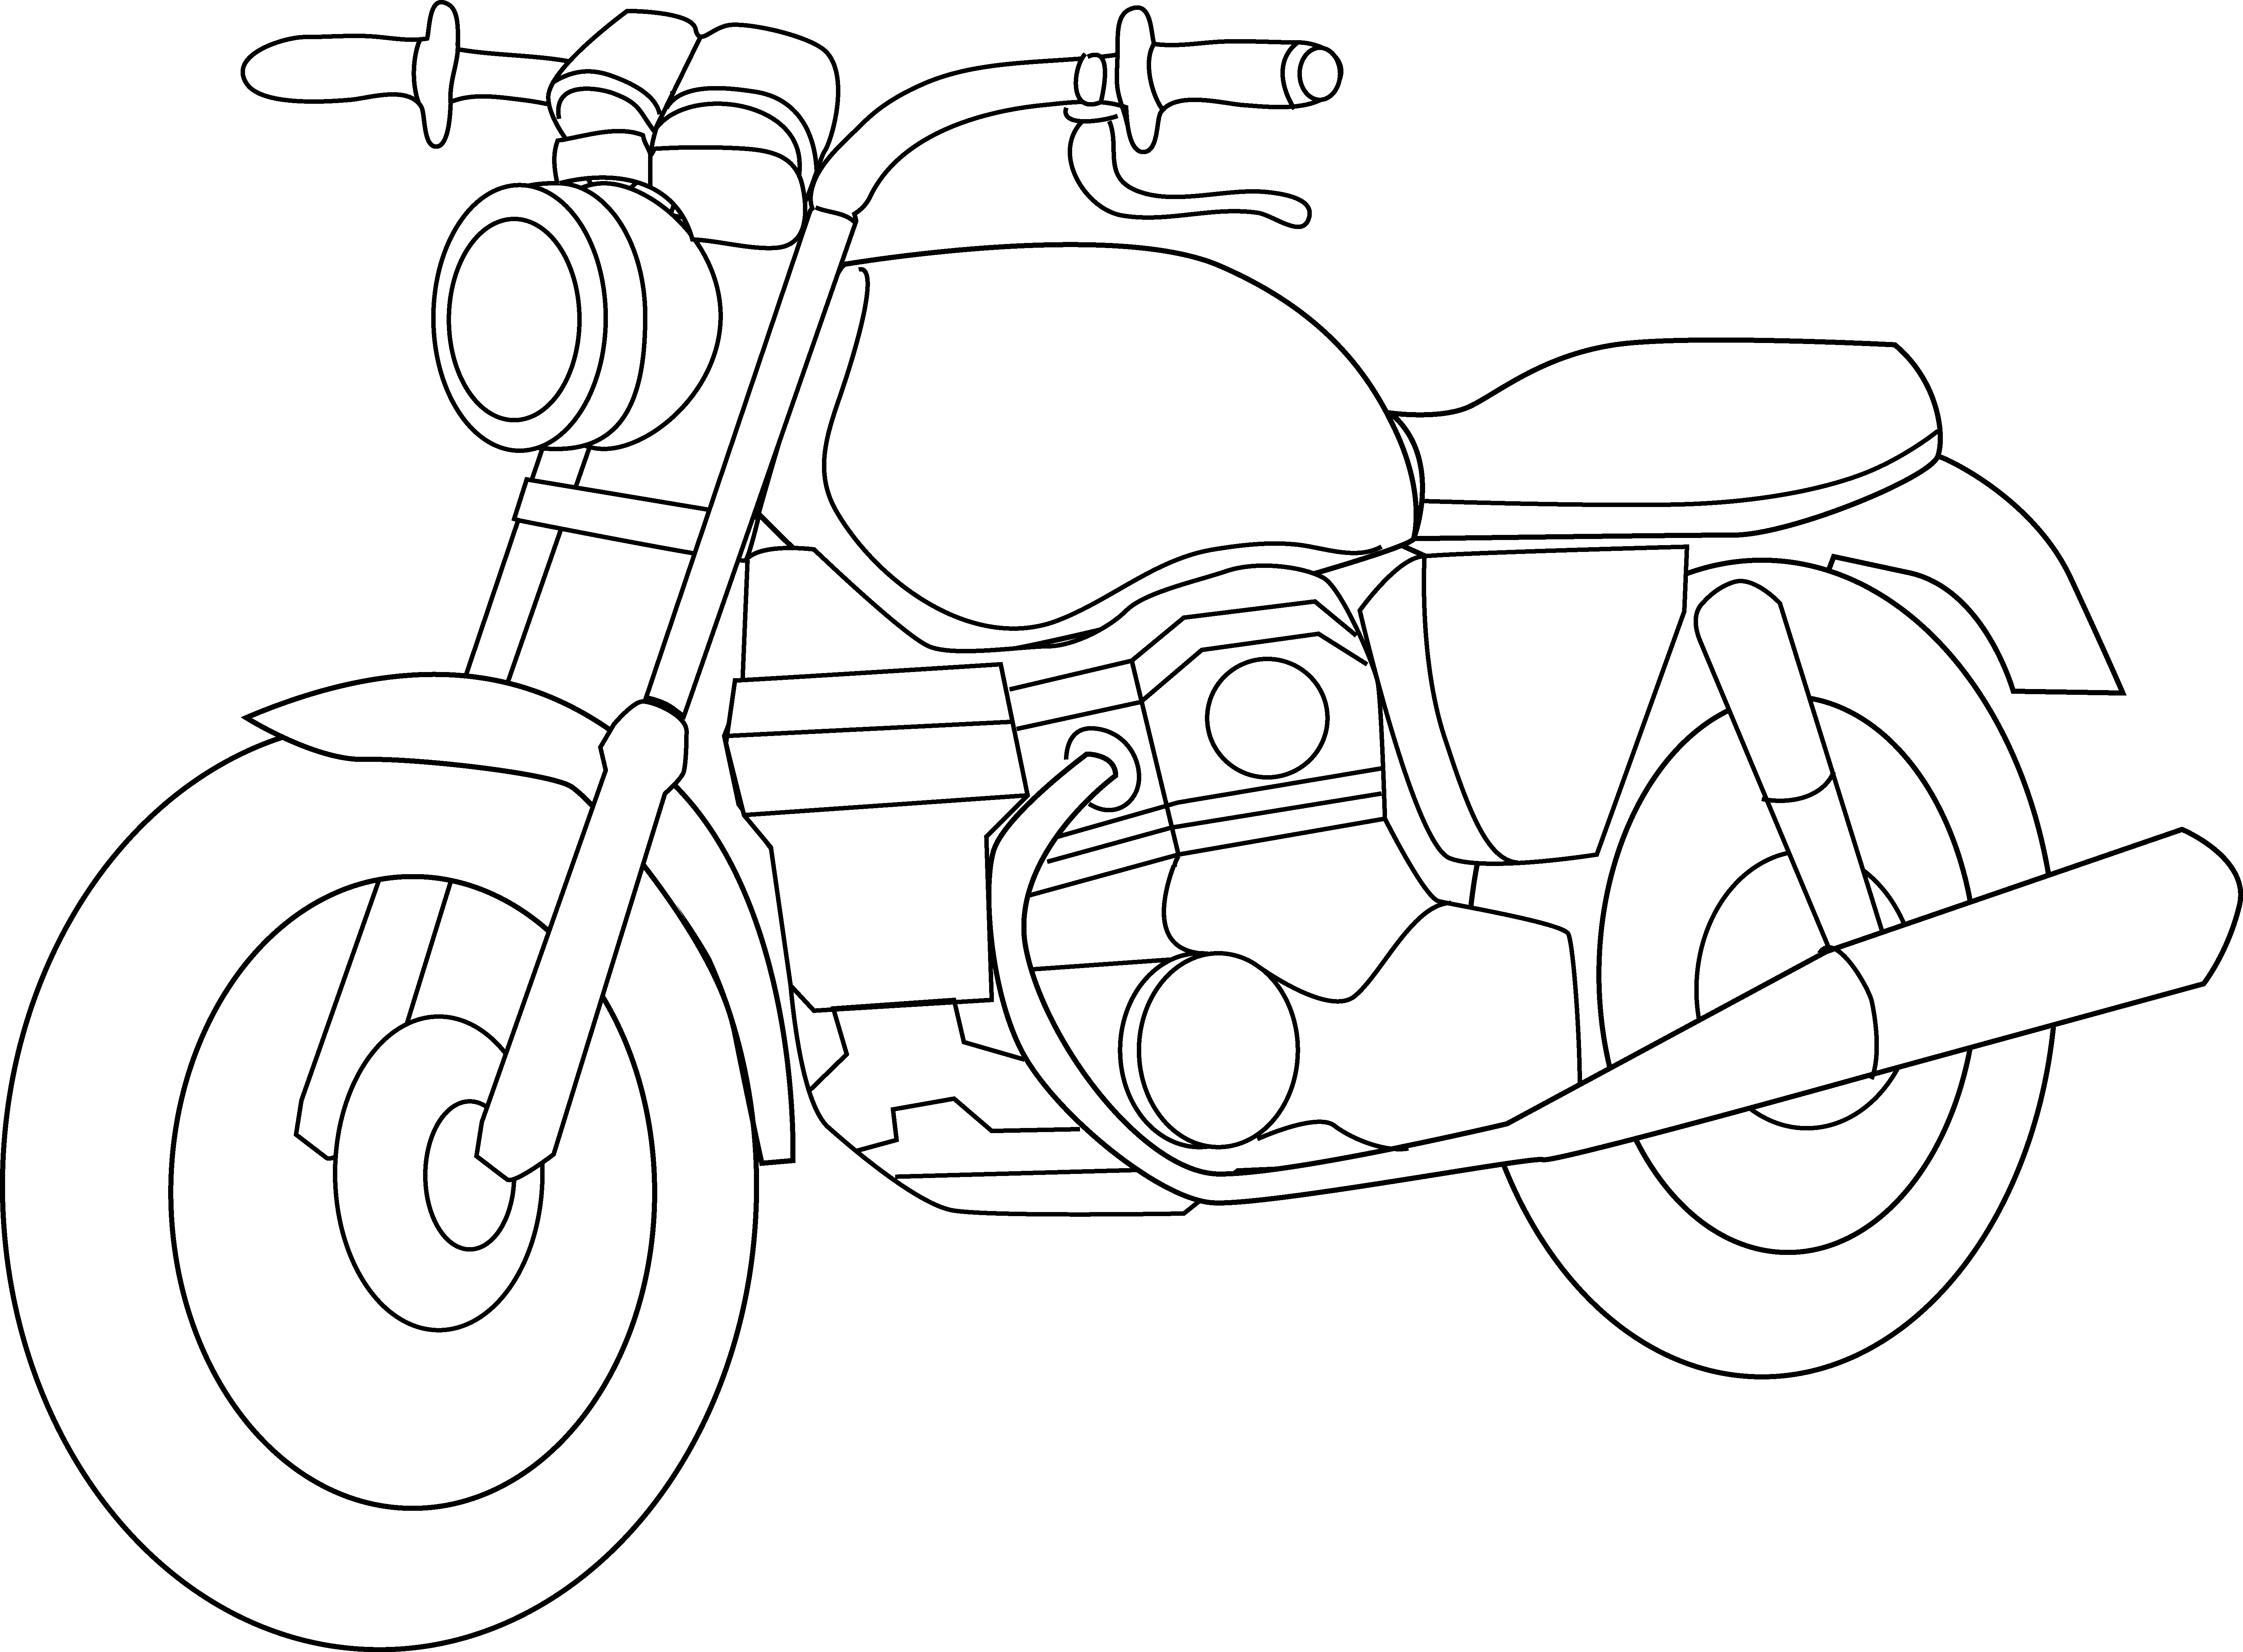 coloring pictures of motorcycles cool coloring motorcycles motorcycles free coloring pictures coloring of motorcycles